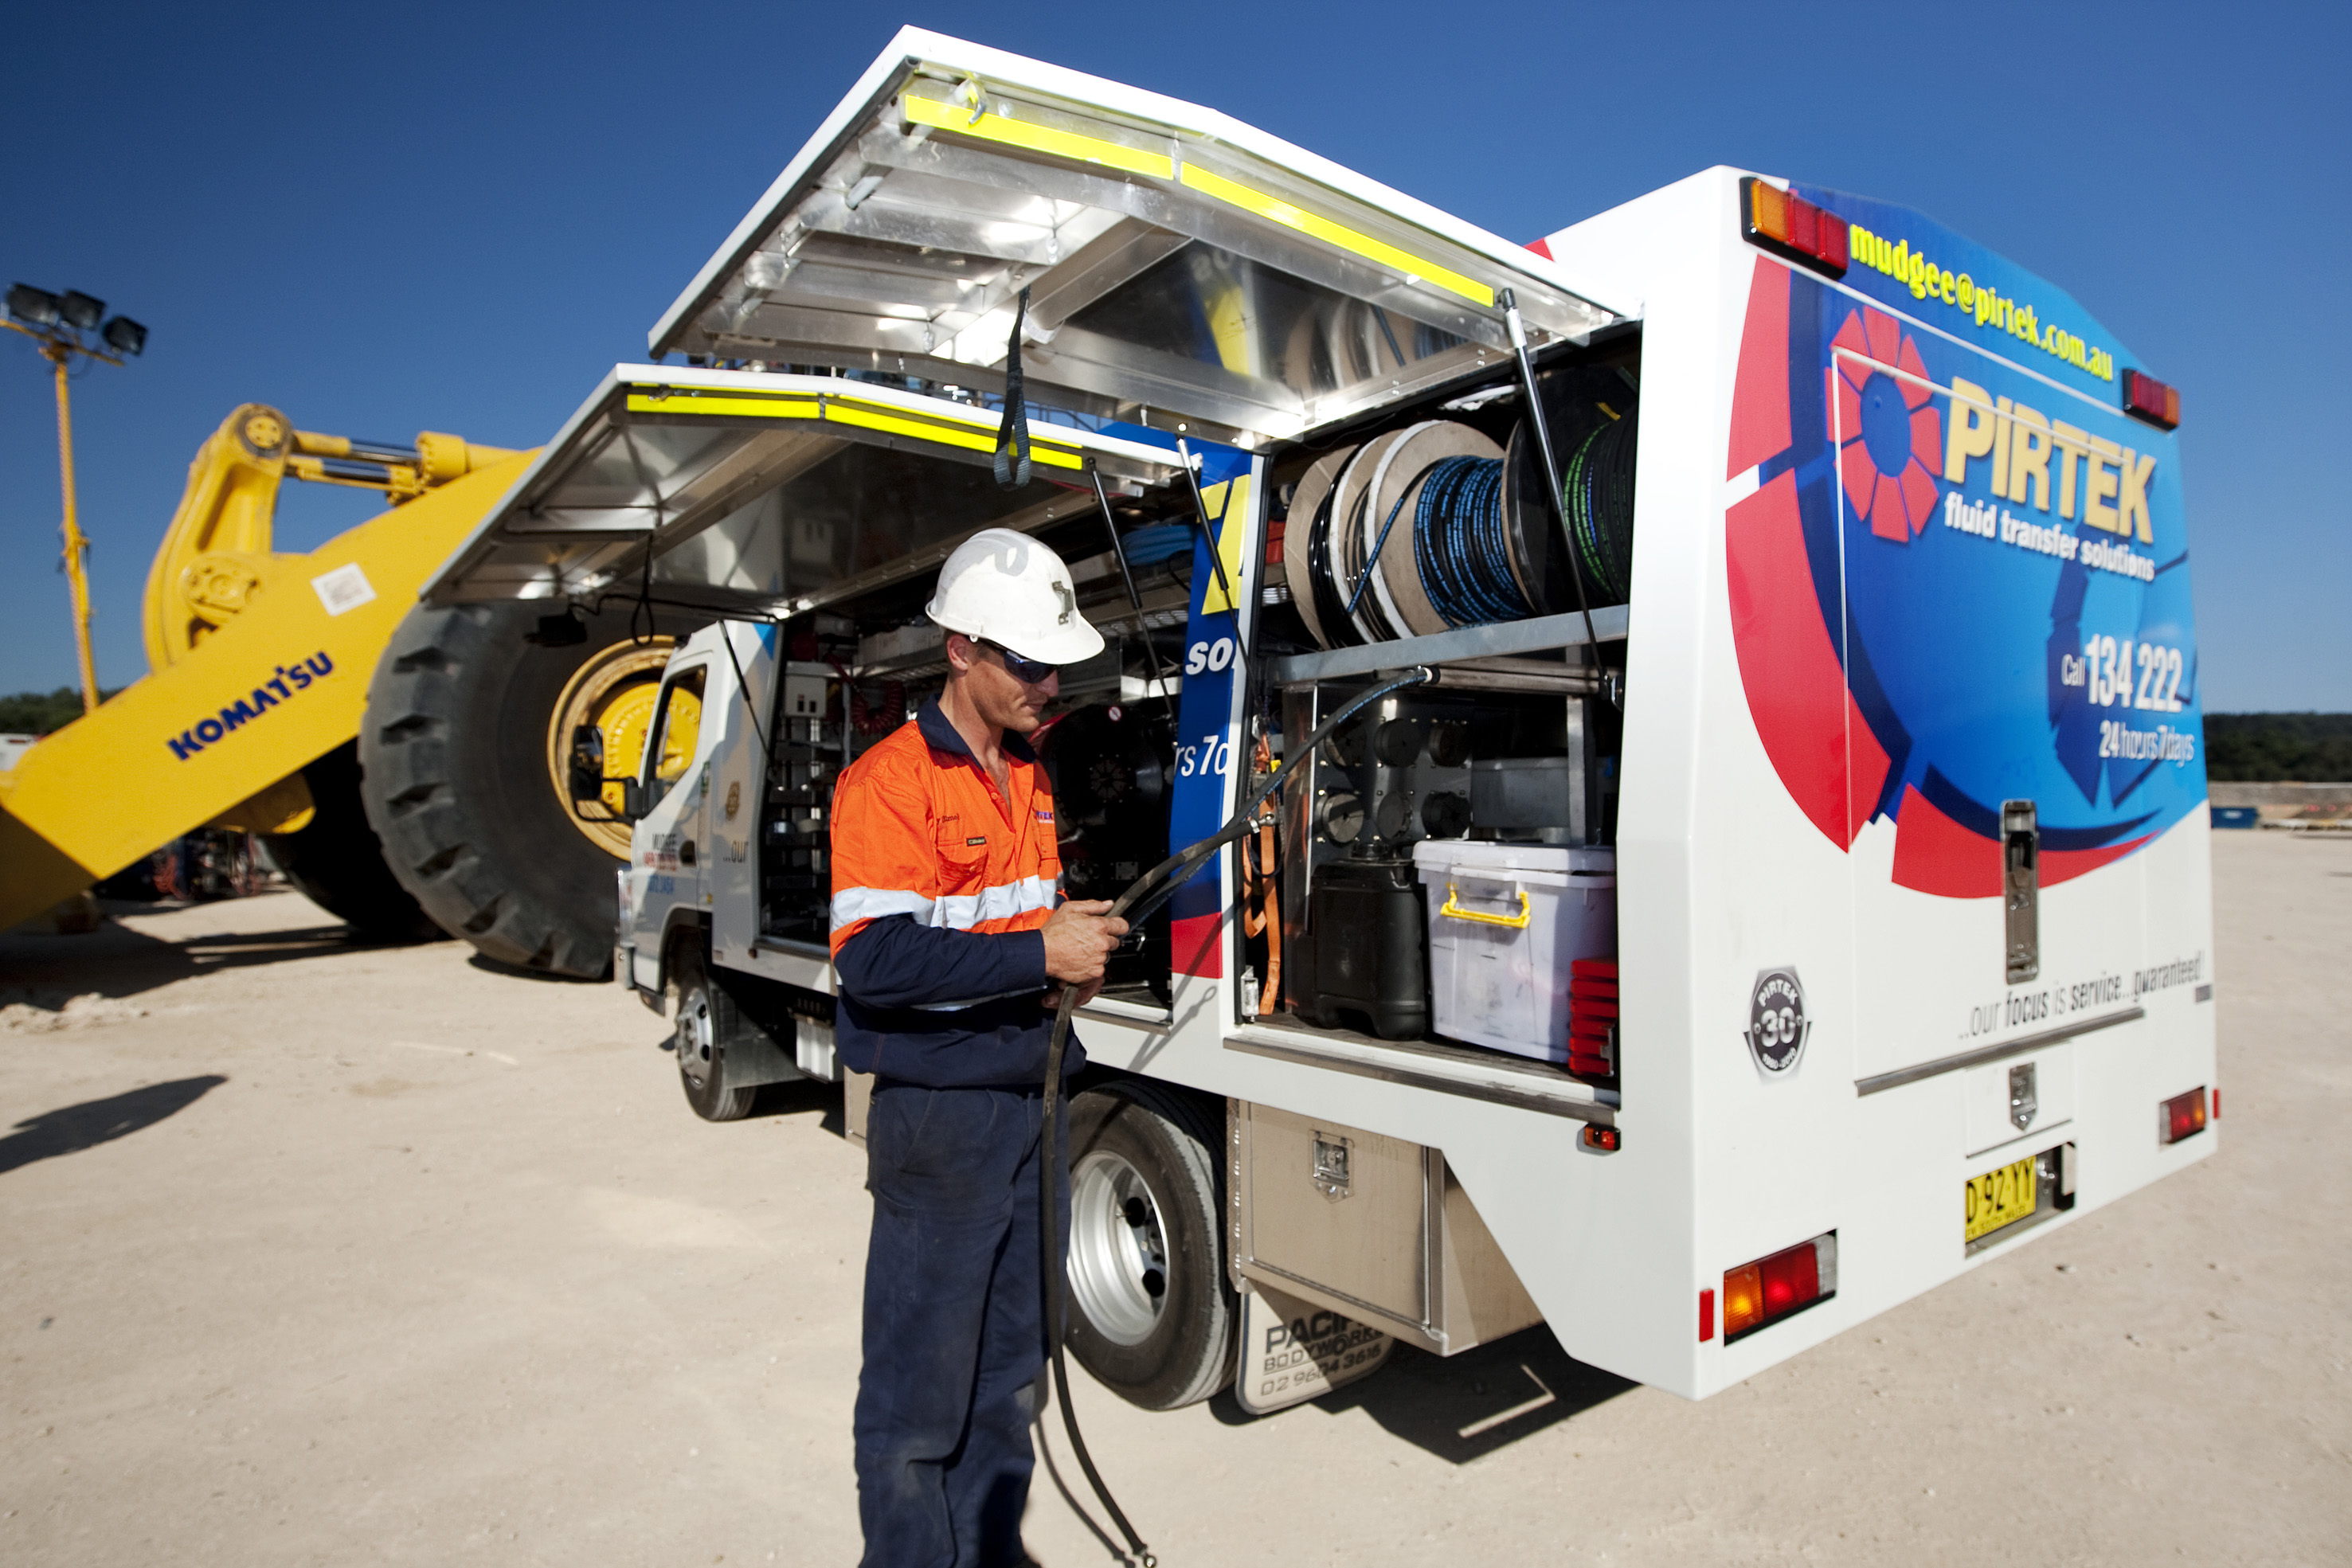 Pirtek Franchise Available - Broome